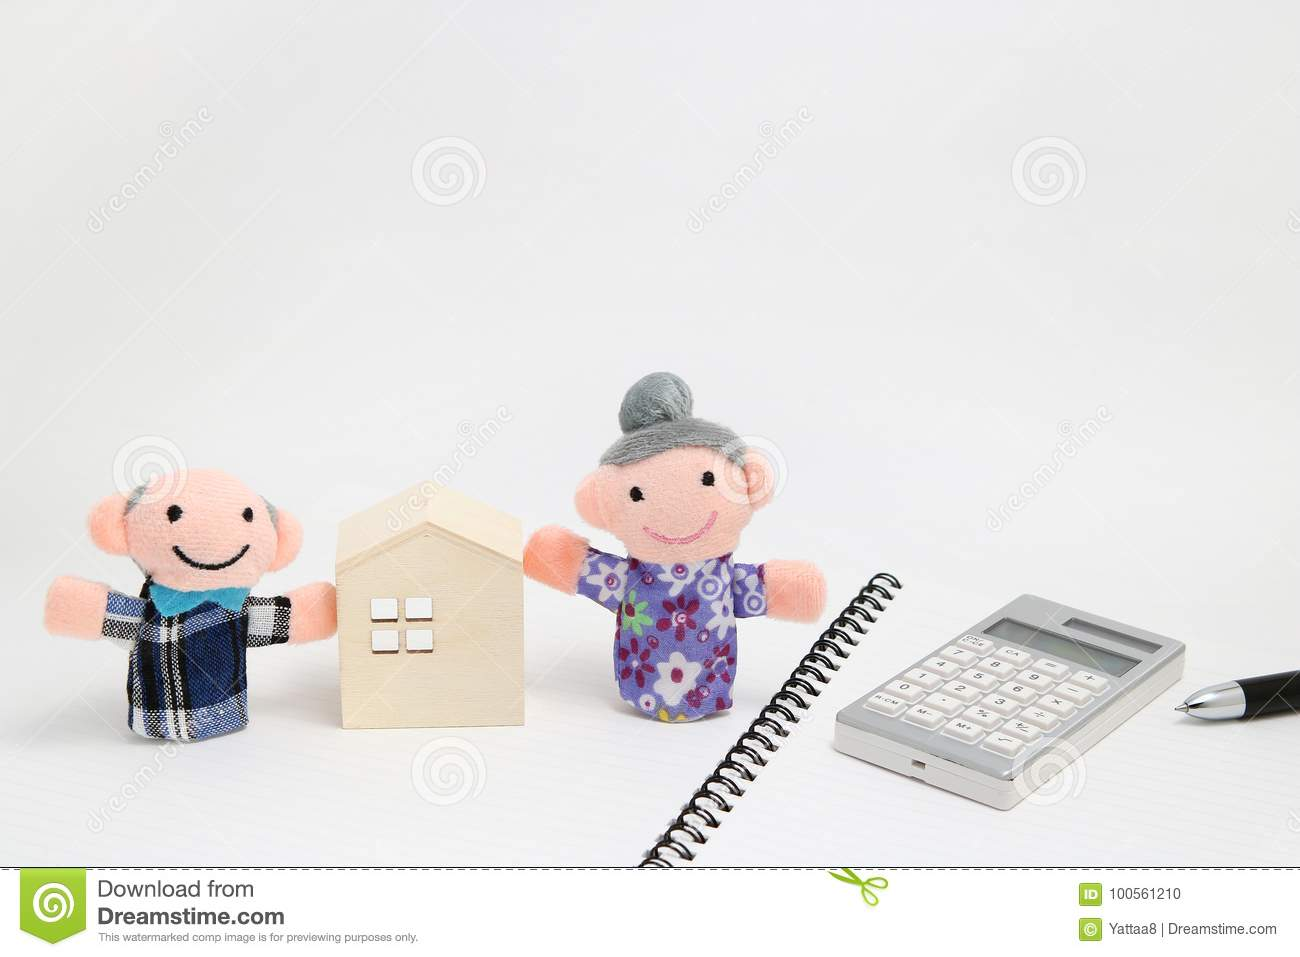 elderly people with wheelchair and calculator on white background